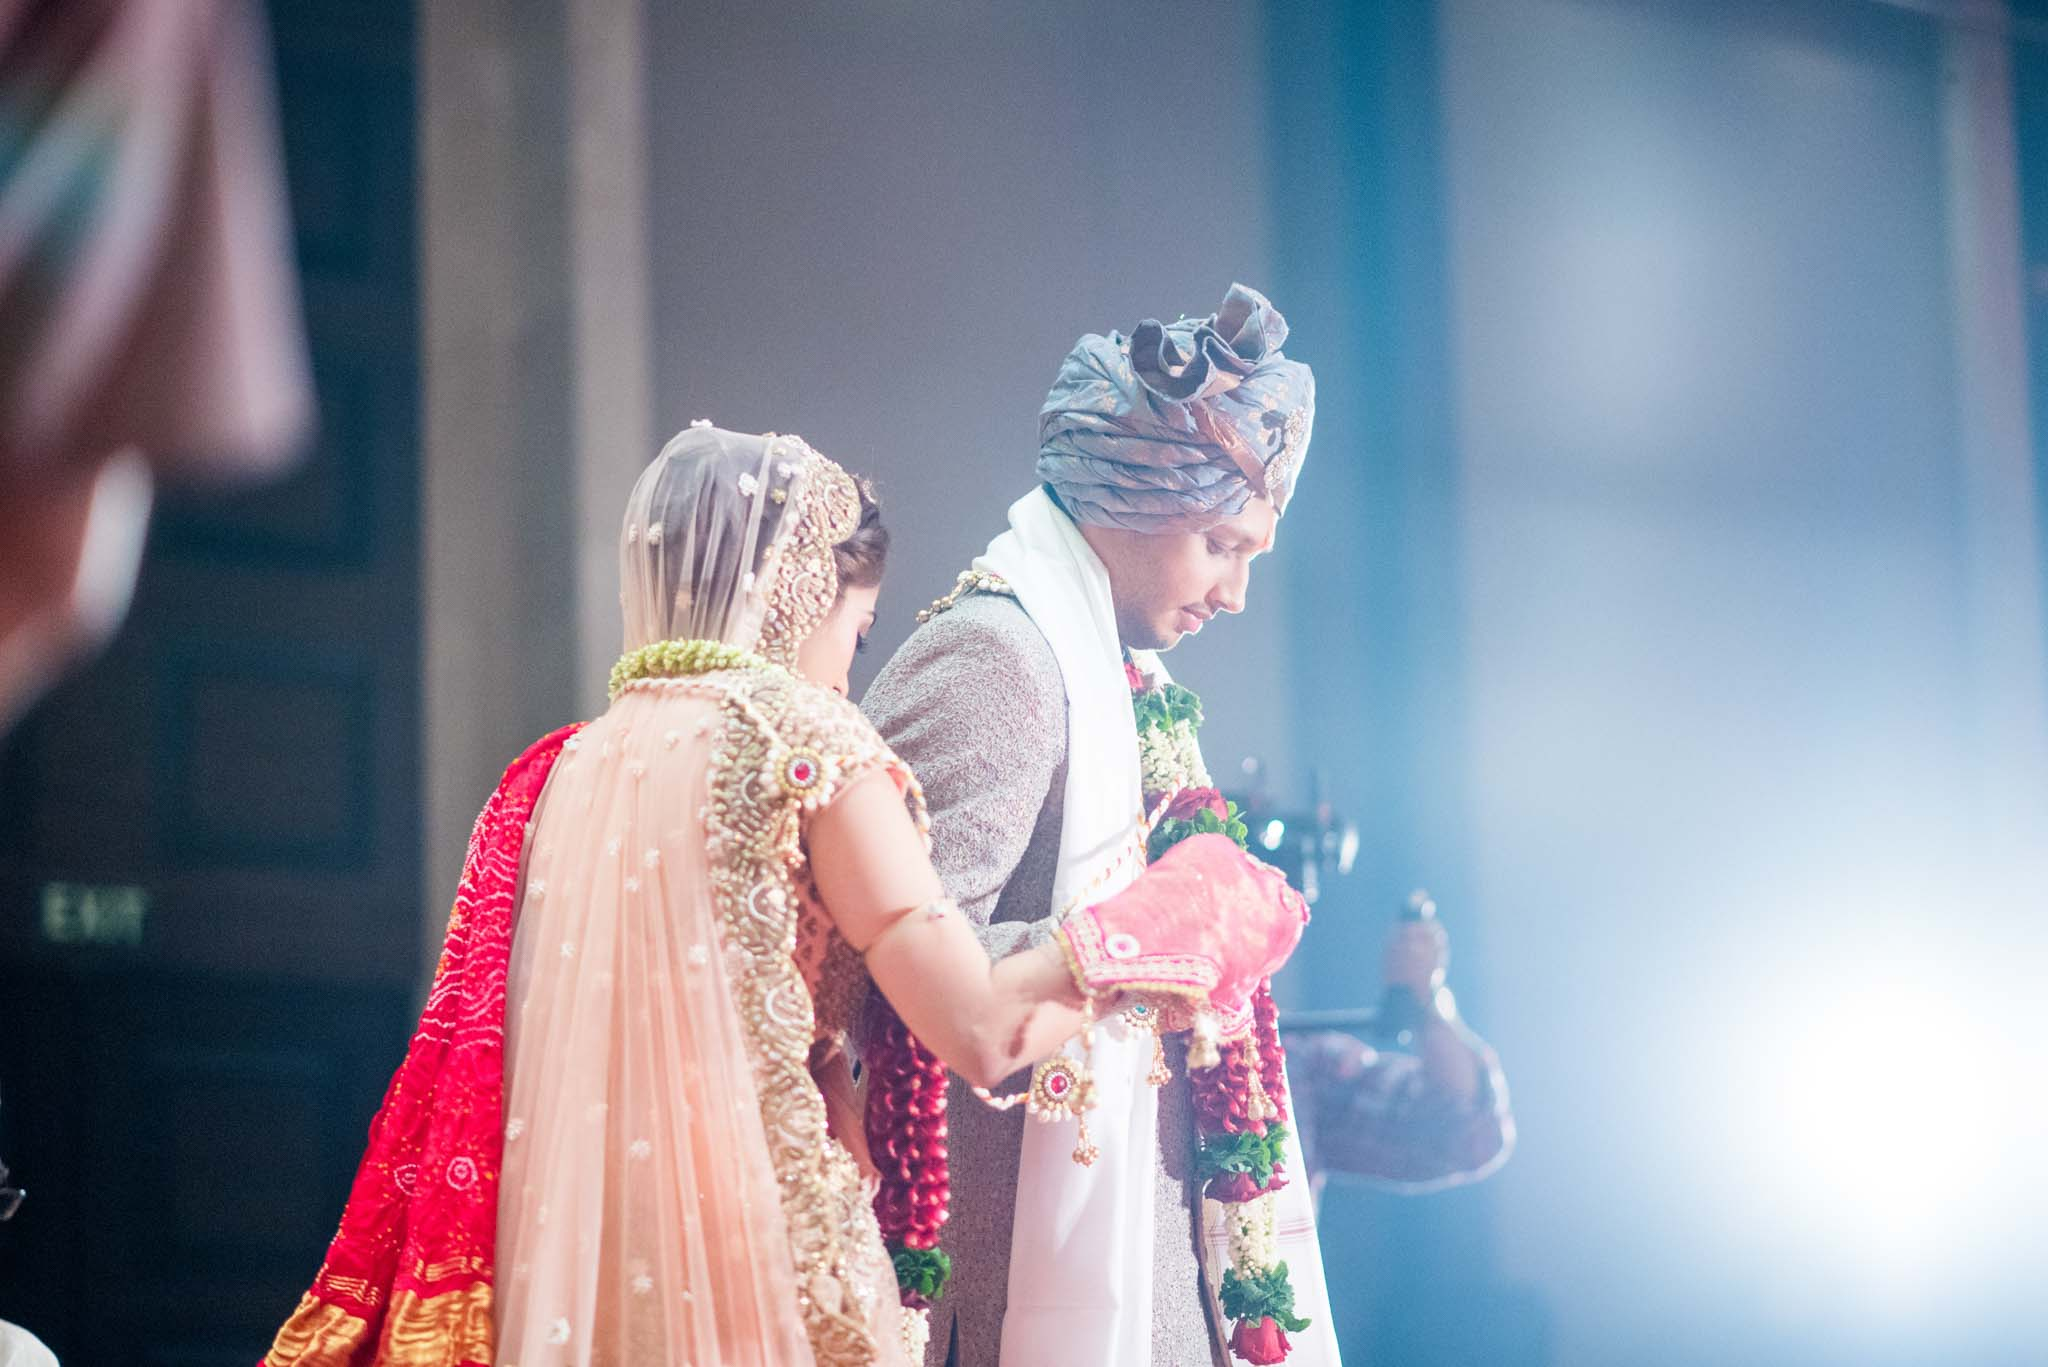 StRegis-Palladium-Mumbai-Candid-Wedding-Photography-47